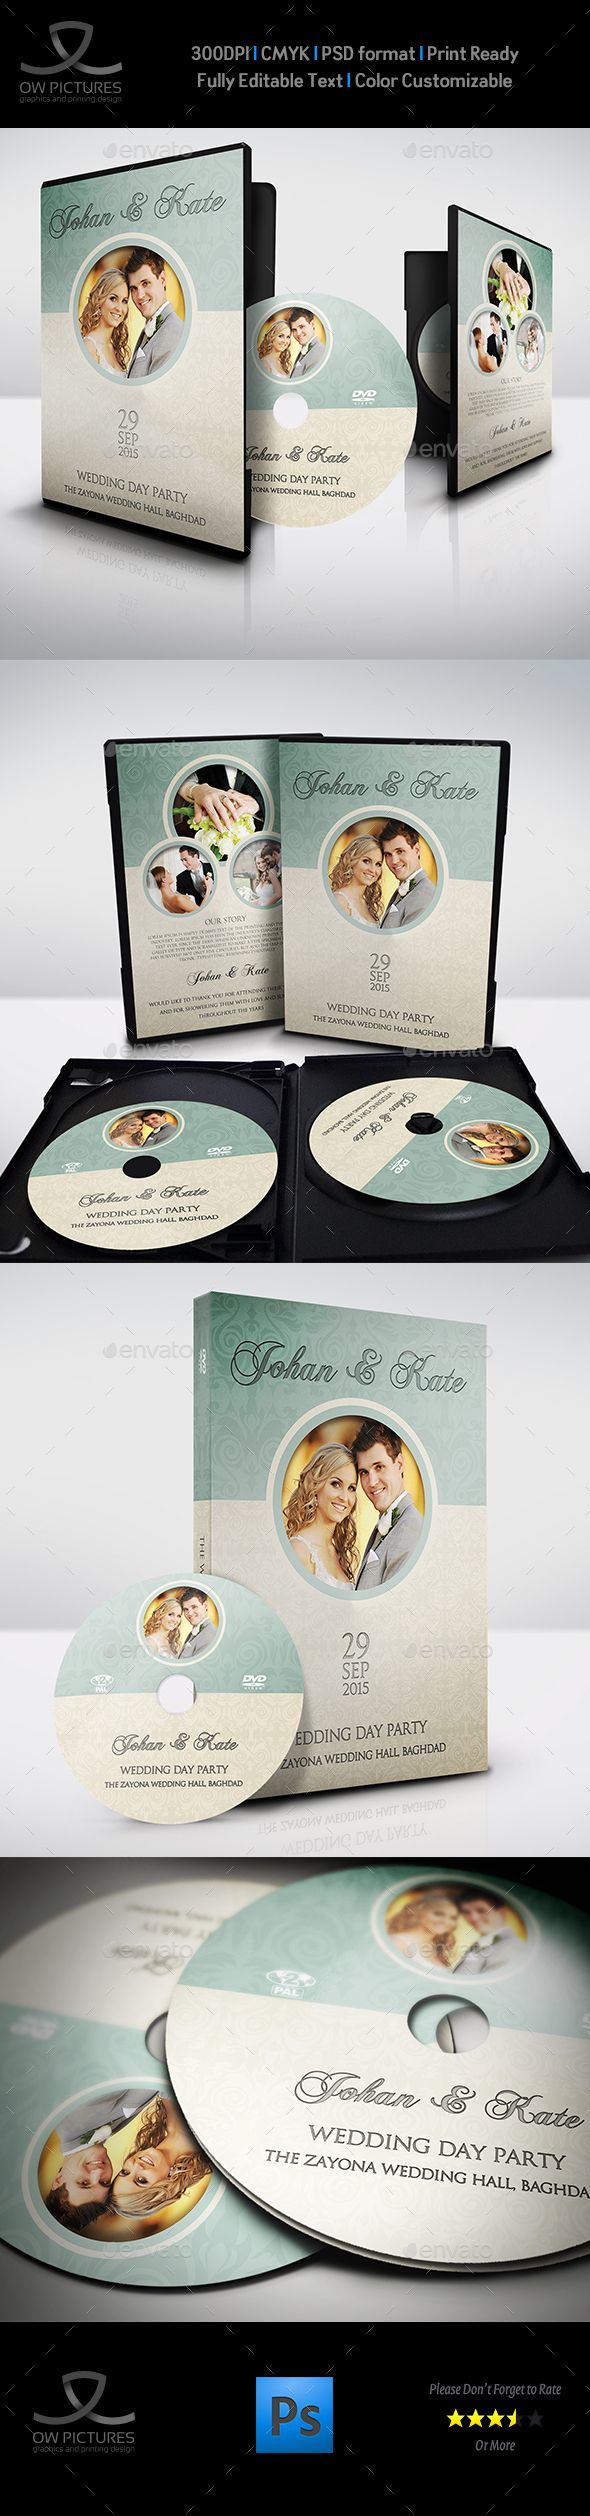 Best 25 Dvd labels ideas on Pinterest Free cd covers Home